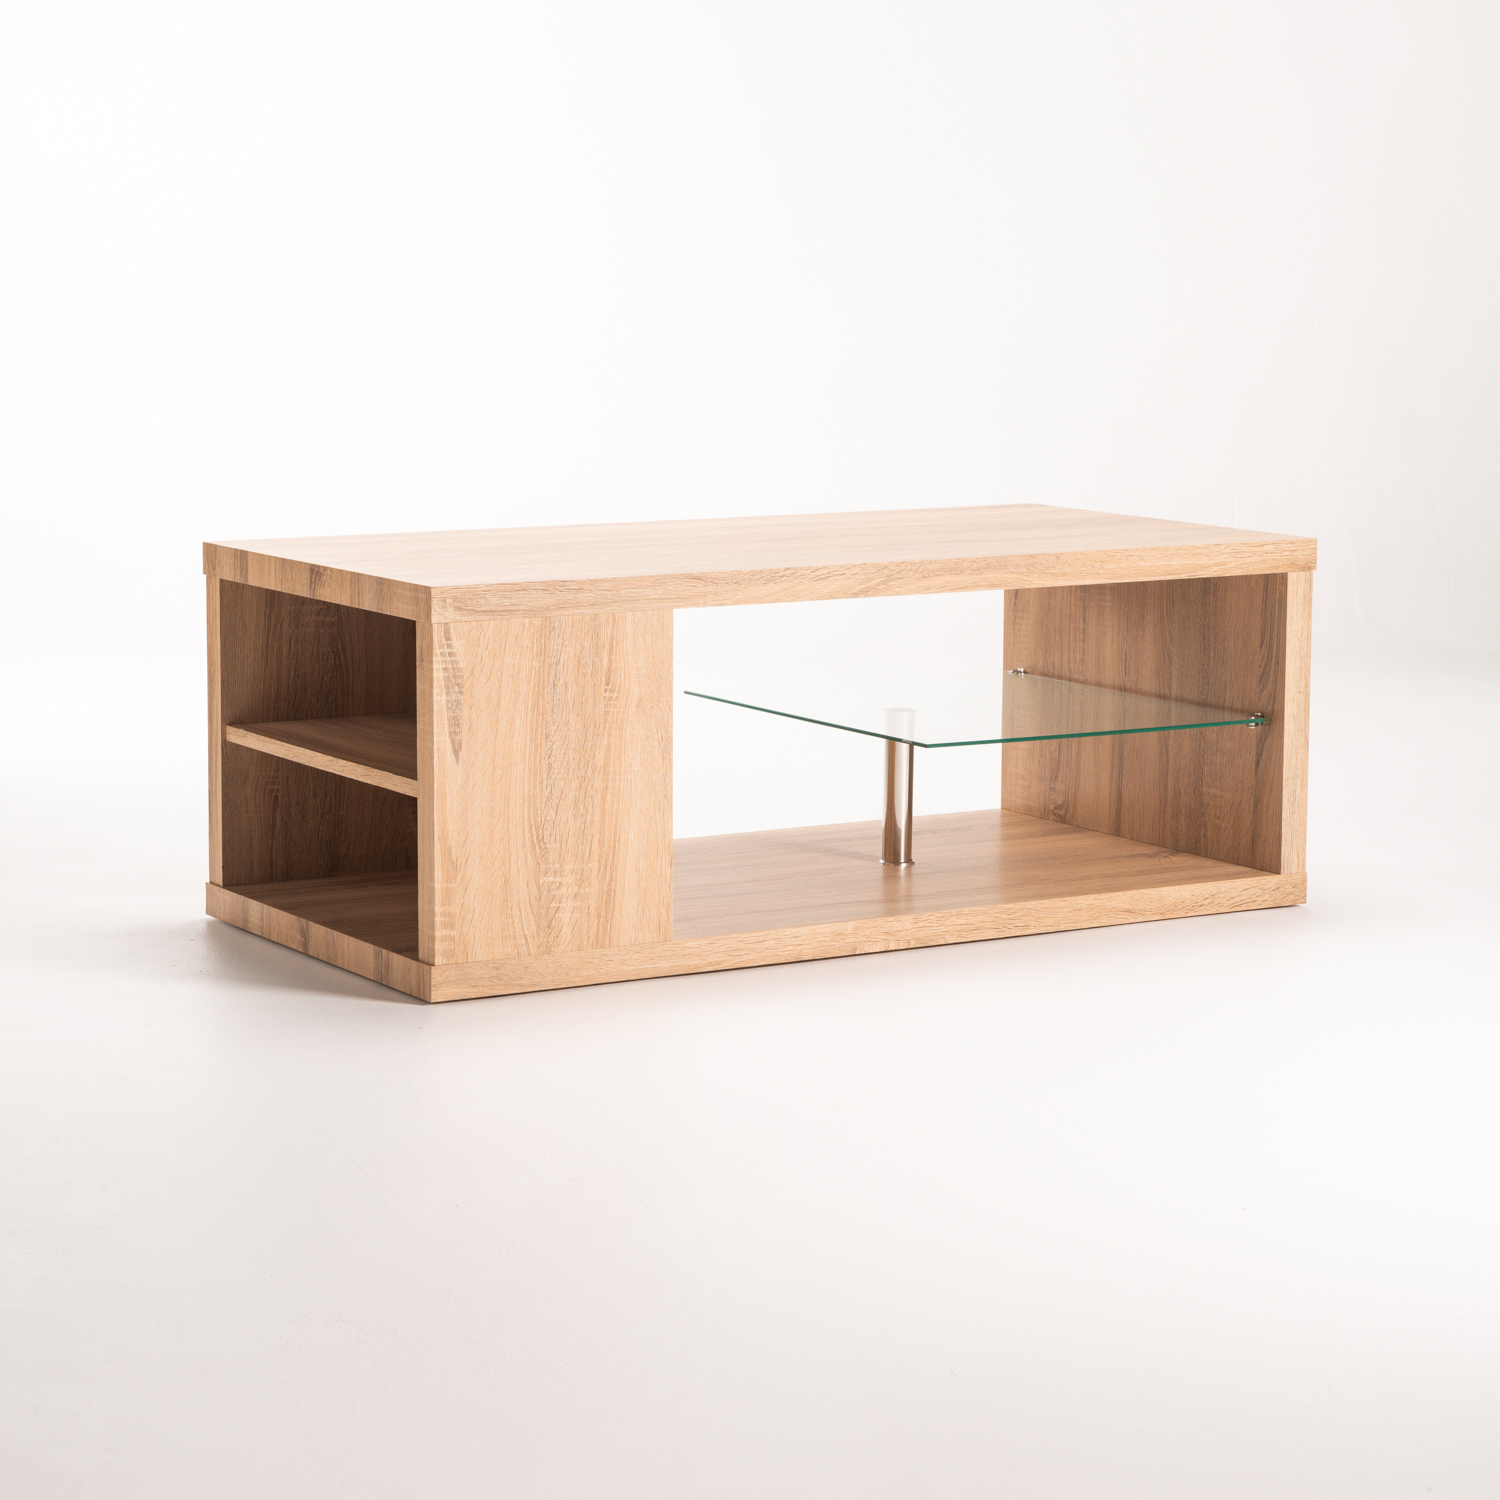 ZEUS 120x60cm COFFEE TABLE